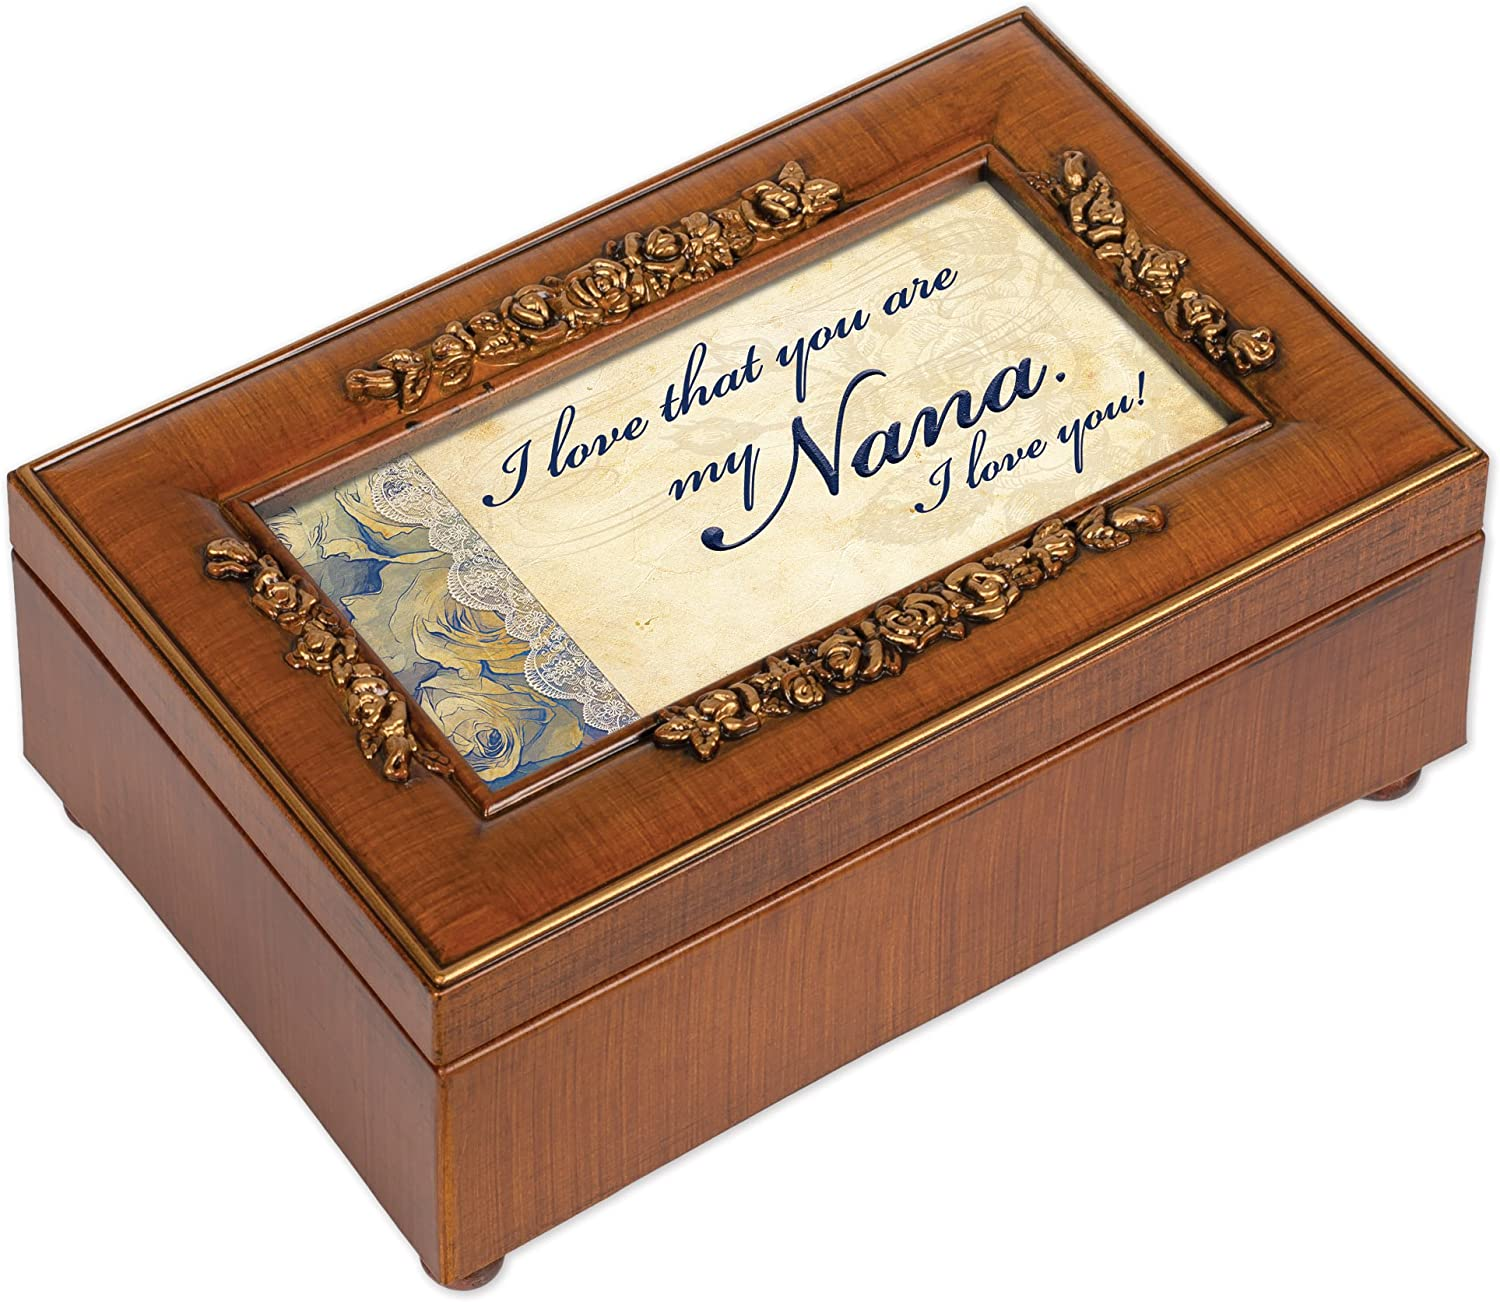 Cottage Garden Love That You are My Nana Woodgrain Embossed Jewelry Music Box Plays Wonderful World